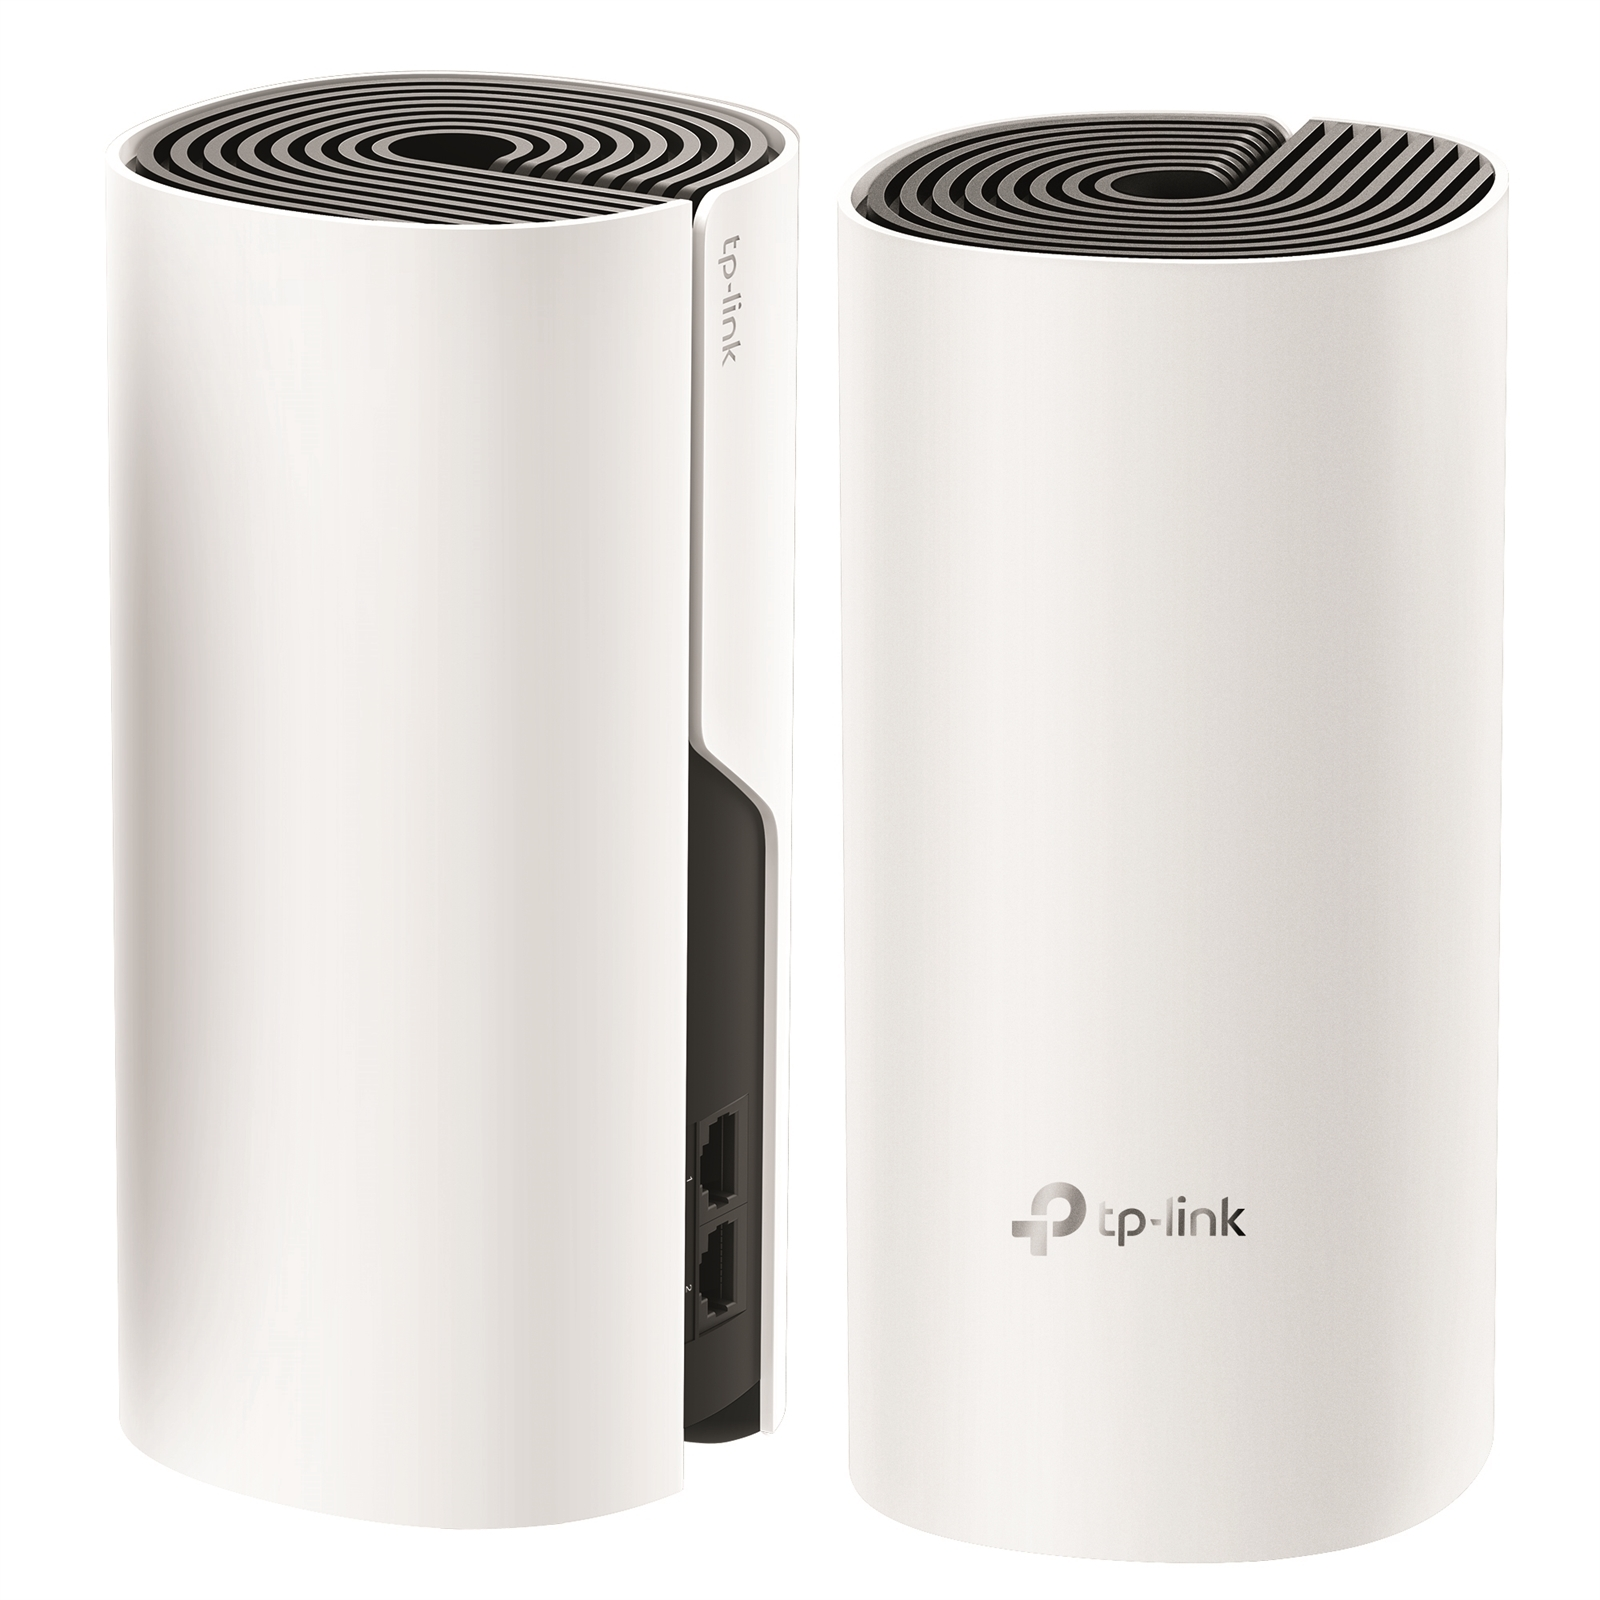 TP-Link Deco M4 Dual-Band Mesh Wi-Fi Router - 2 Pack